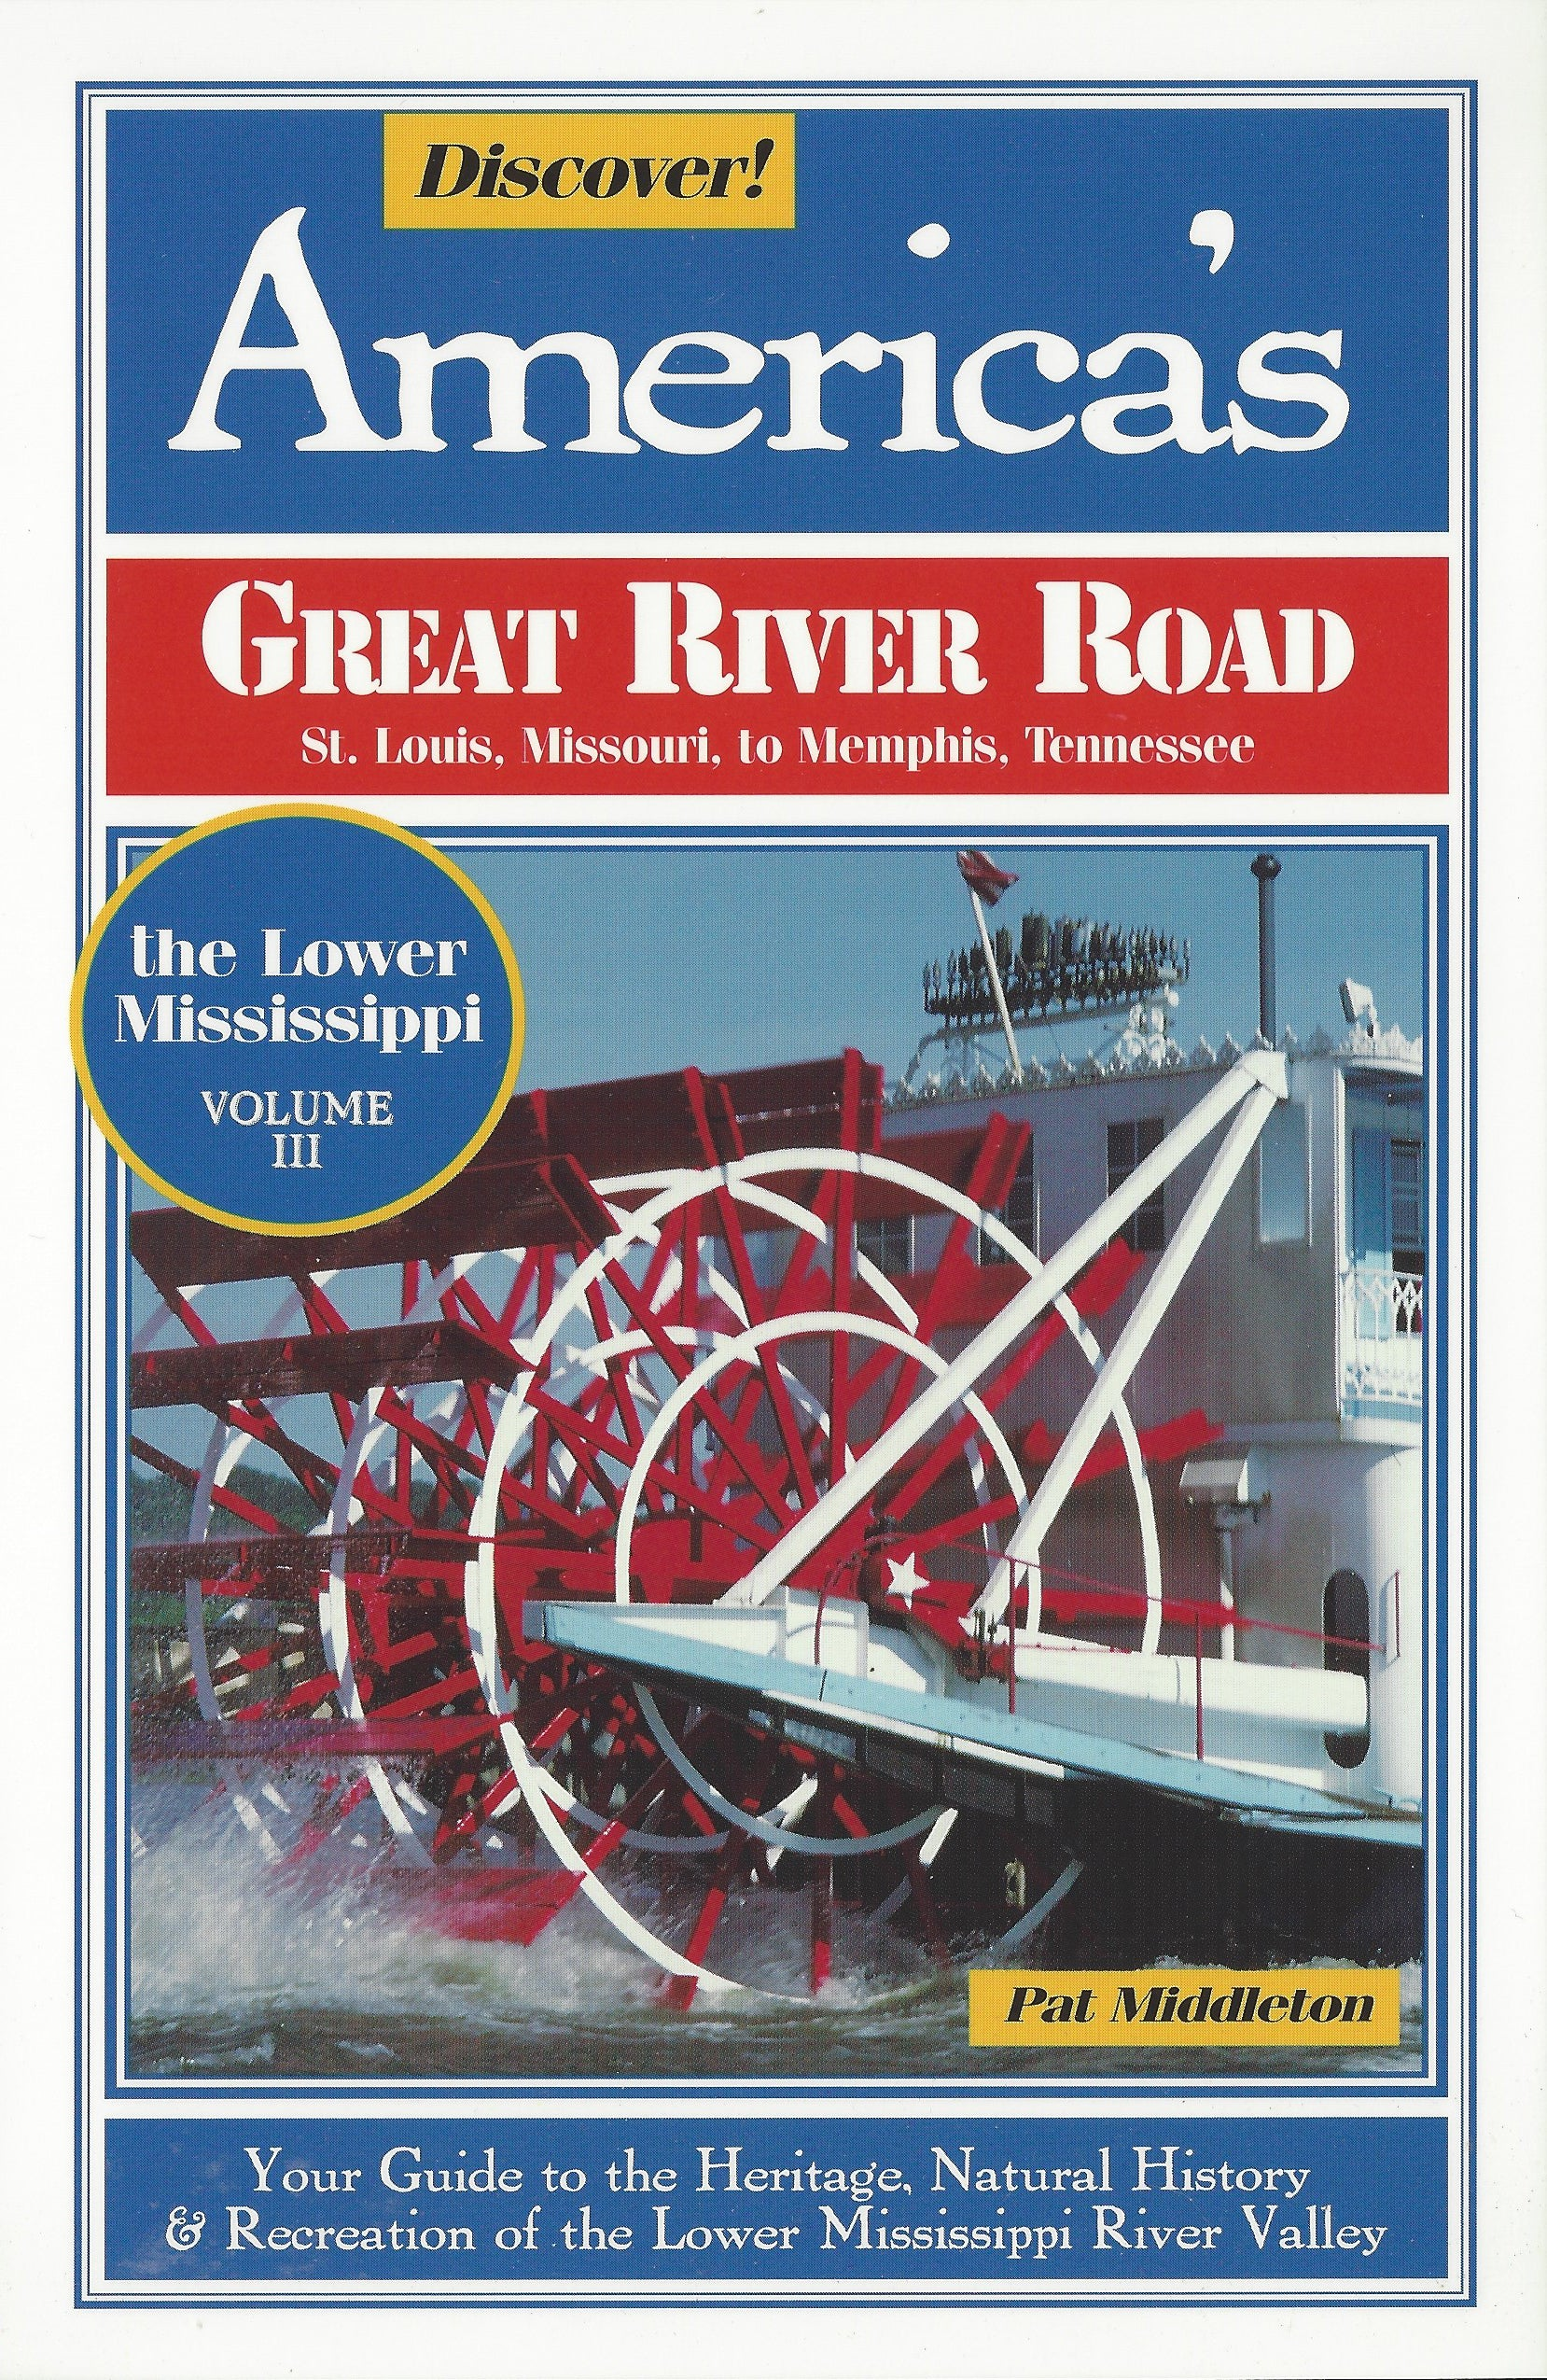 Discover America's Great River Road, Vol 3 - St. Louis to Memphis